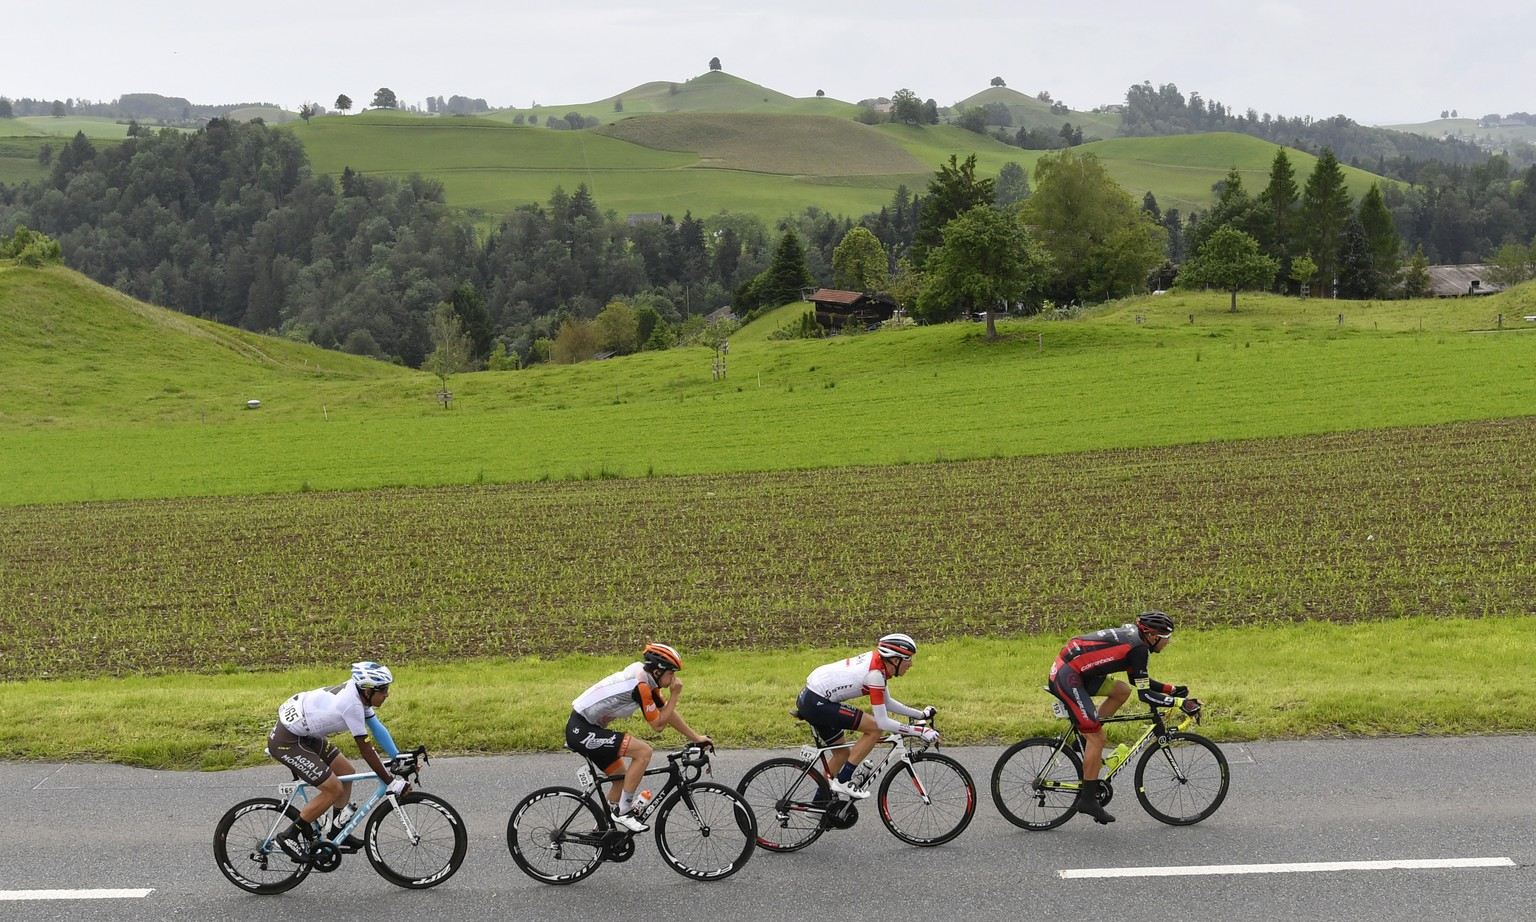 The four leading riders with Austrian Mathias Krizek, Team Roth, Swiss Marcel Wyss, Iam Cylcling, Dutch Antwan Tolhoek, Roompot Oranje Peloton and France's Sebastien Minard, Ag2r La Mondial, from right, on their way near Spitzen, Switzerland, during the 2nd stage, a 187,6 km race with start and finish in Baar, Switzerland, at the 80th Tour de Suisse UCI ProTour cycling race, on Sunday, June 12, 2016. (KEYSTONE/Gian Ehrenzeller)